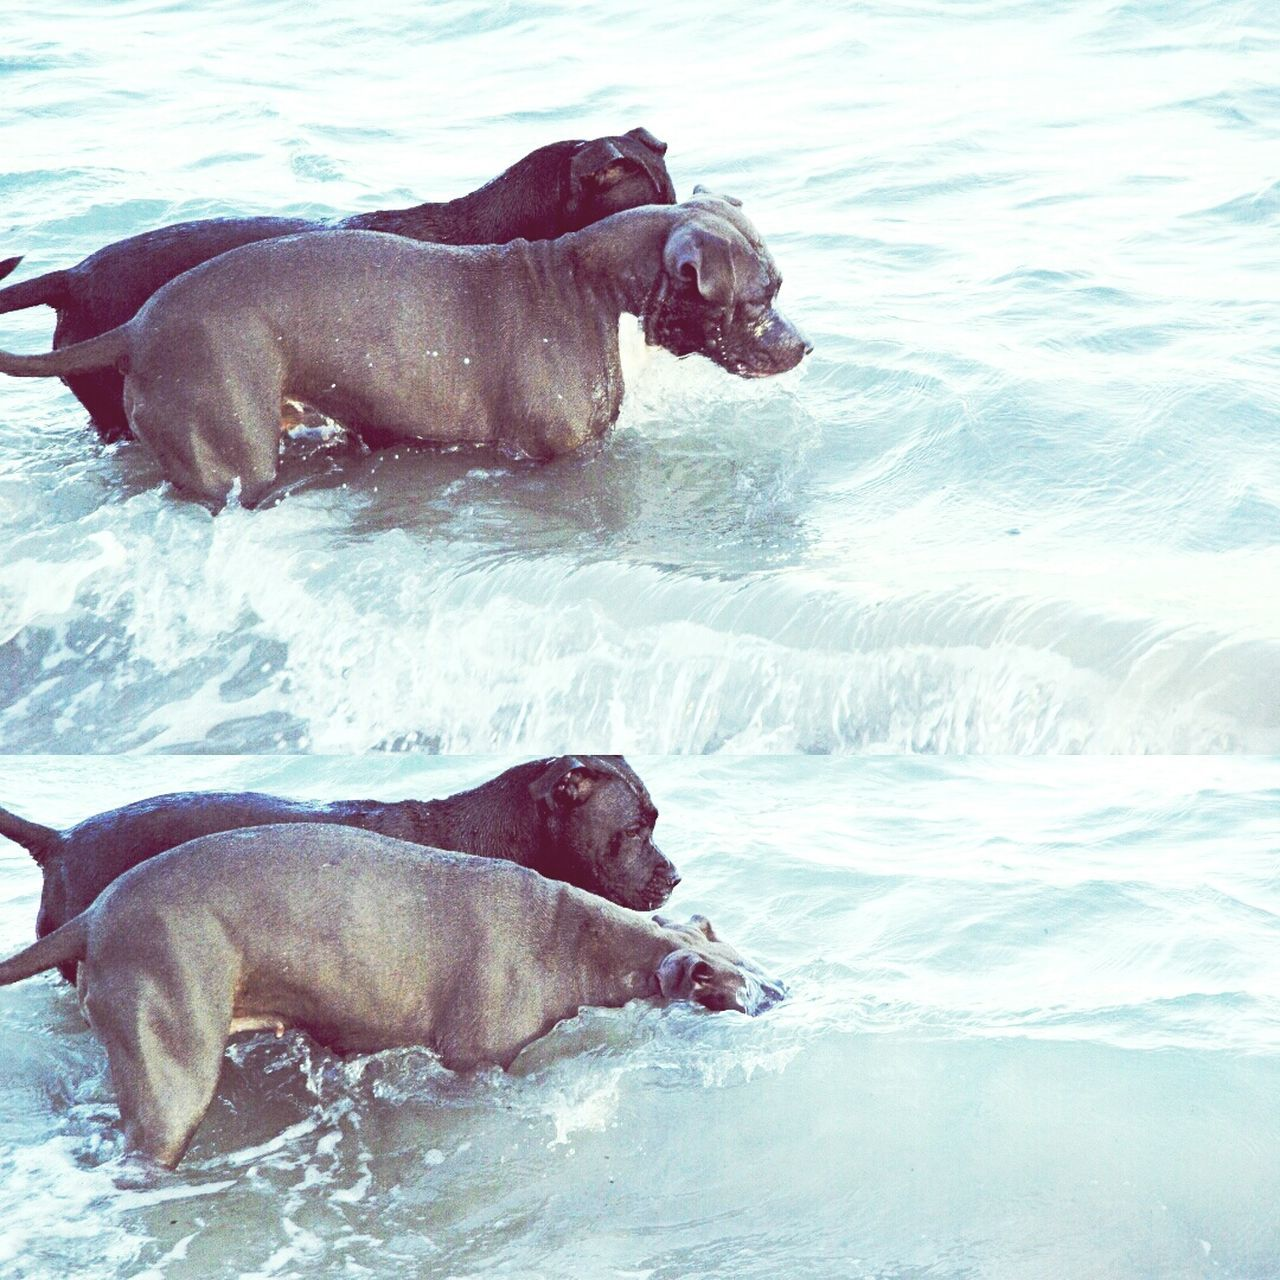 Los Pitbulls también bucean! Real People Pet Clothing Two Animals Tranquility Animal Themes Animal Beach Domestic Animals Pitbullsofficial Pitbullsofinstagram Dogmodels Canine Pitbullove Happiness Water Day Nature Pitbull One Animal Zoology Vacations Summer Surf Doggirl Girlfriend